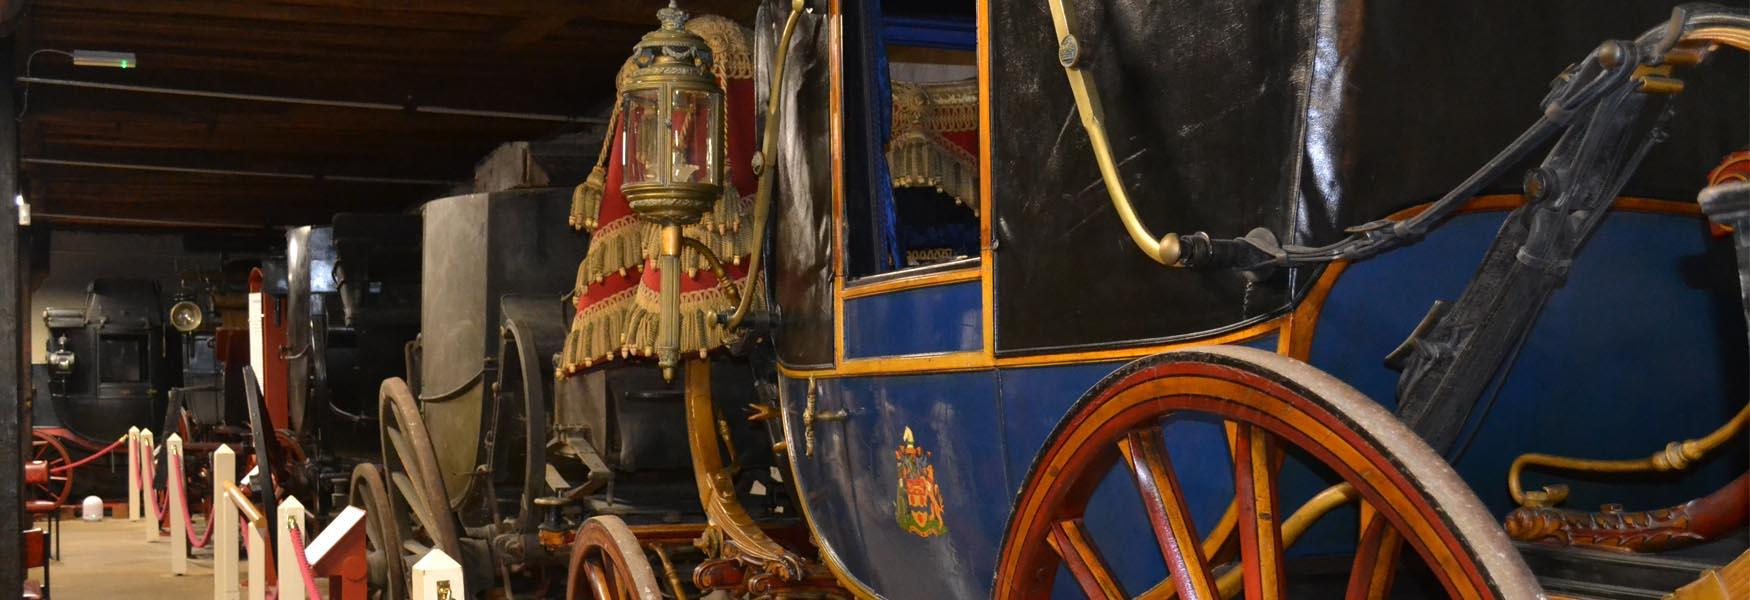 Carriage Museum